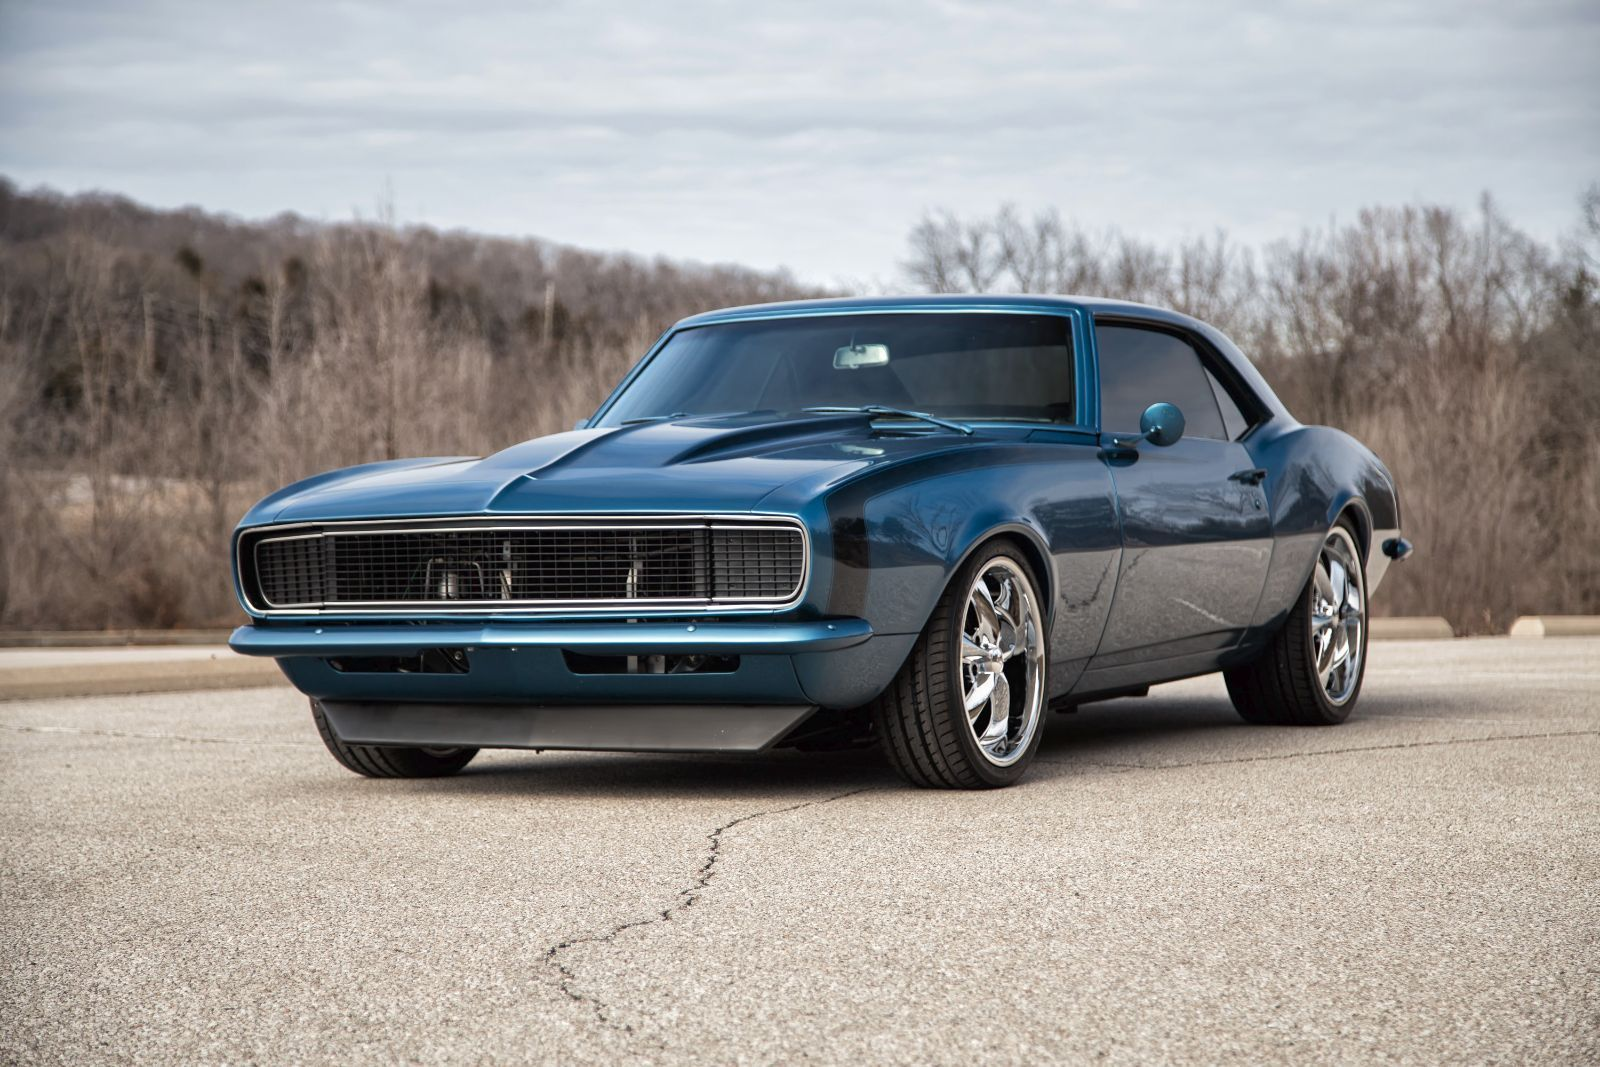 Pics photos chevrolet camaro resto mod for sale - 1968 Camaro Rs Ss Pro Touring Restomod 4 Whl Disk See More On